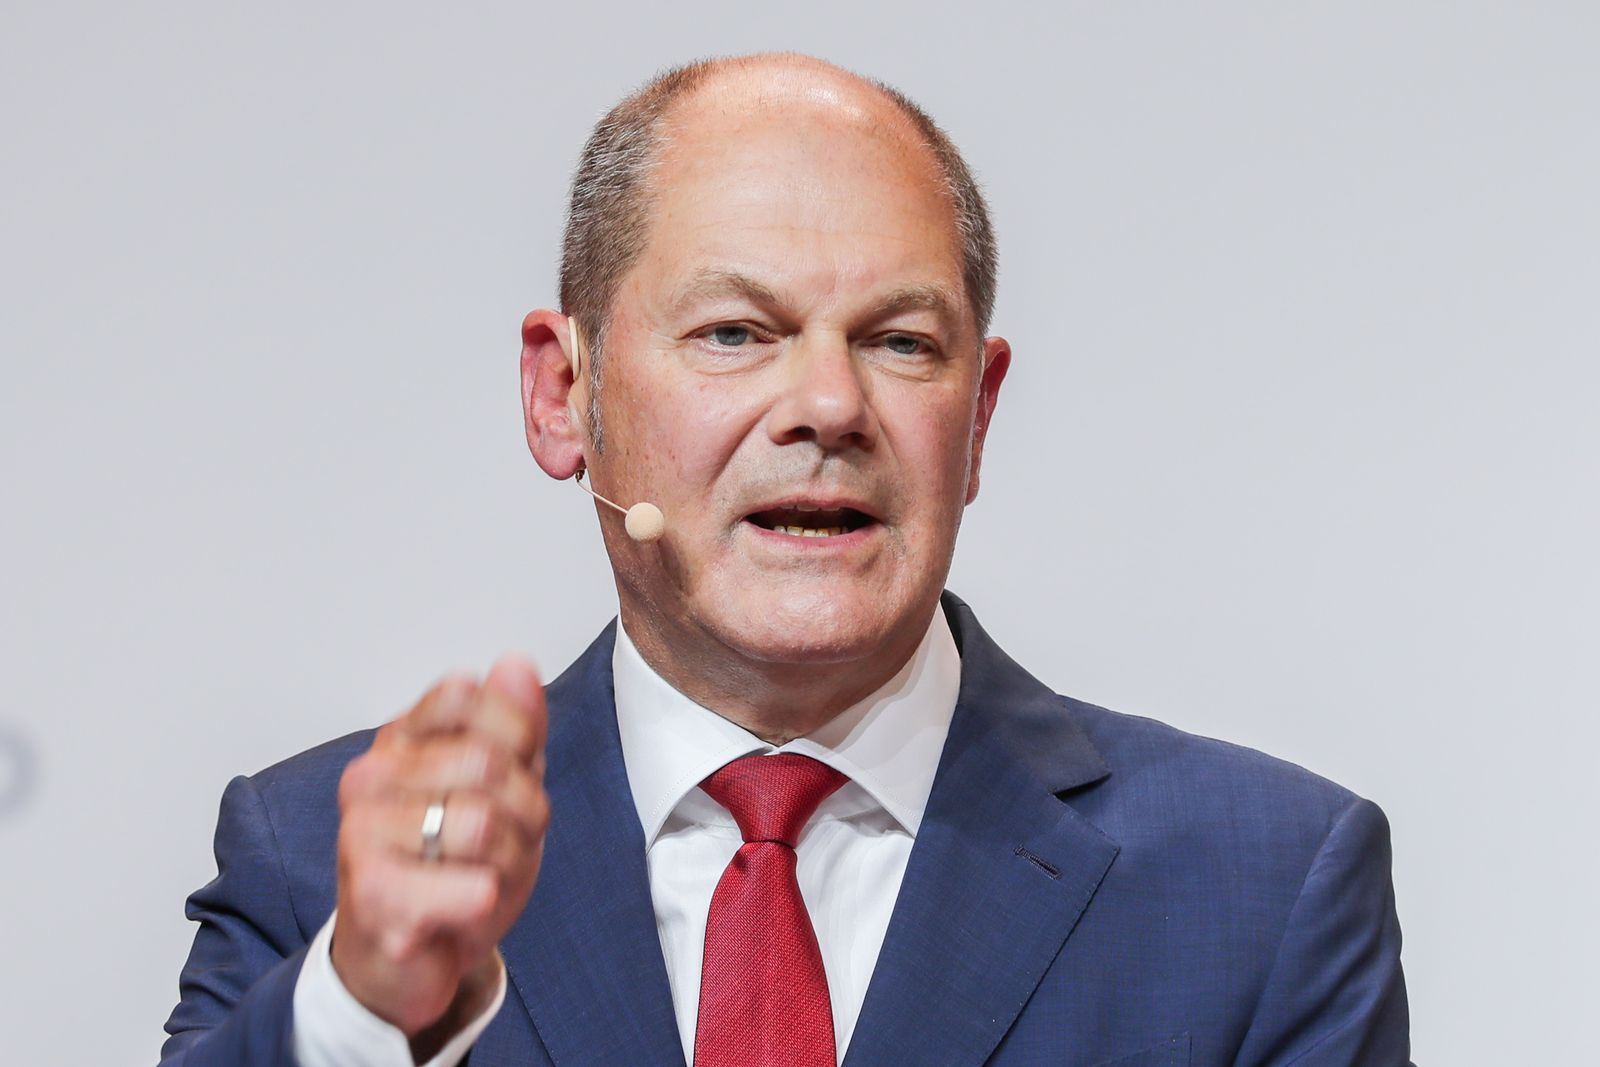 German Minister of Finance Olaf Scholz announces to run for chancellorship, Berlin, Germany - 10 Aug 2020